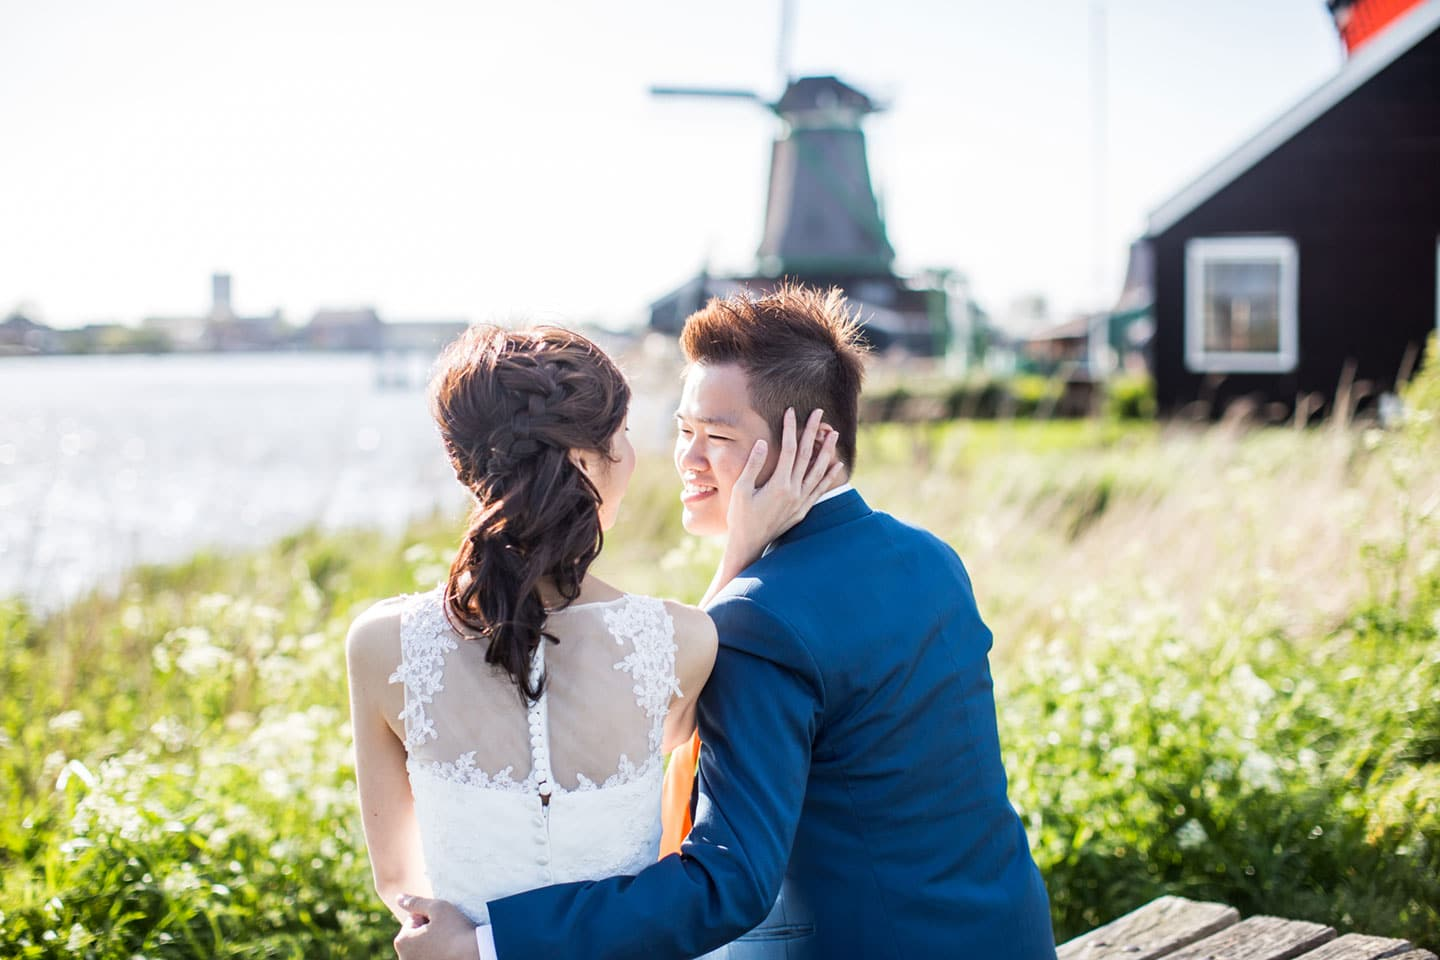 21-pre-wedding-photoshoot-Zaanse-Schans